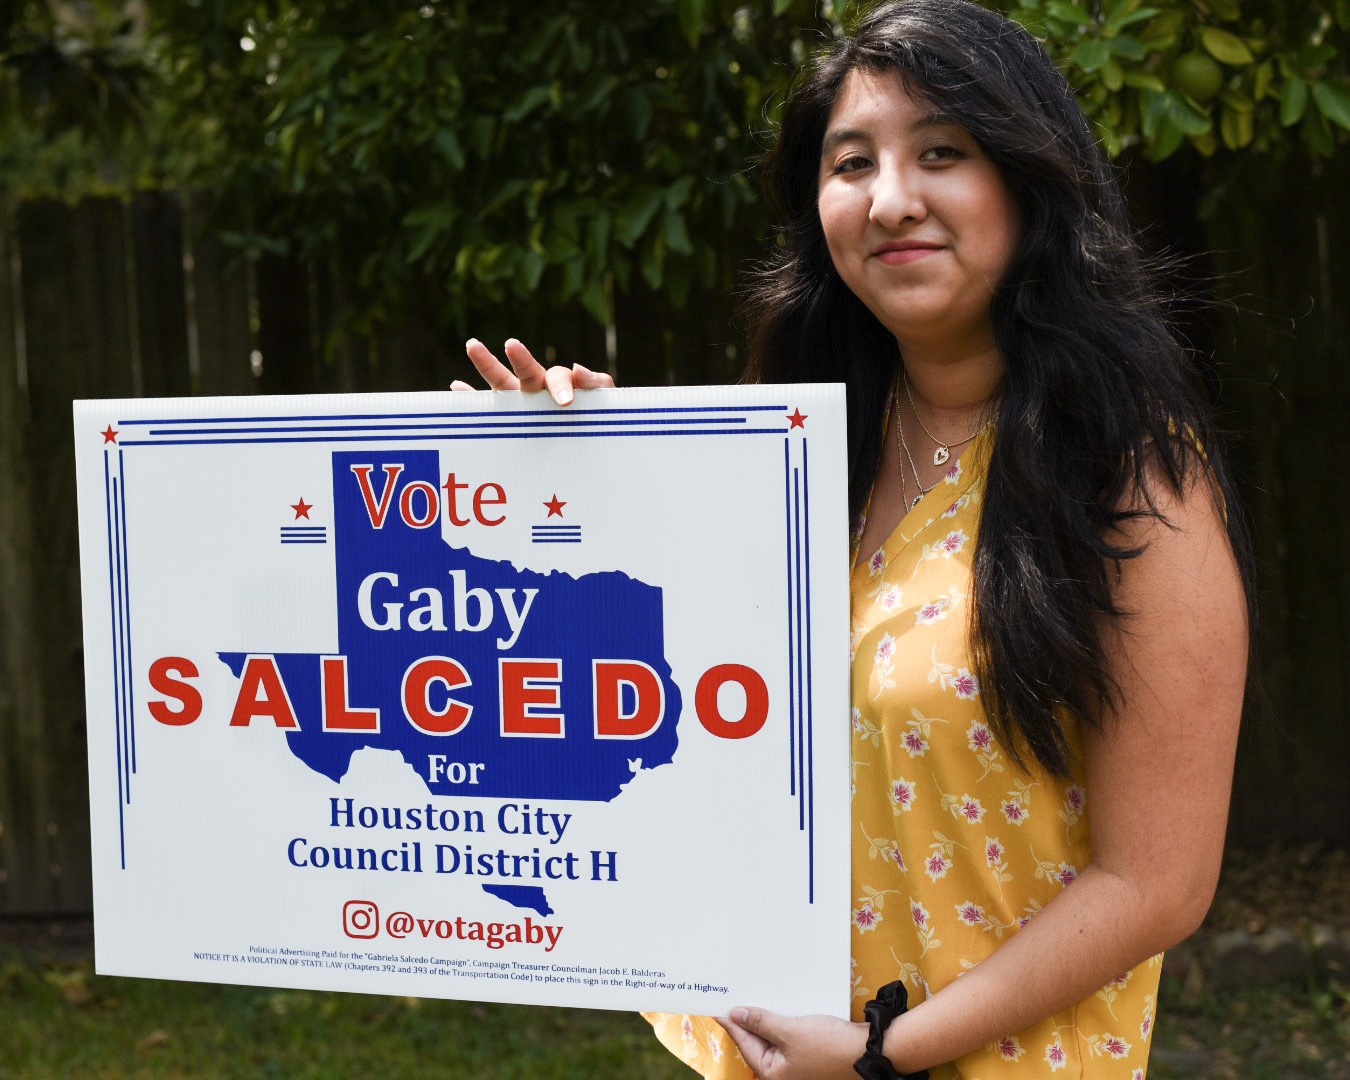 Gaby Salcedo - For Houston City Council District H